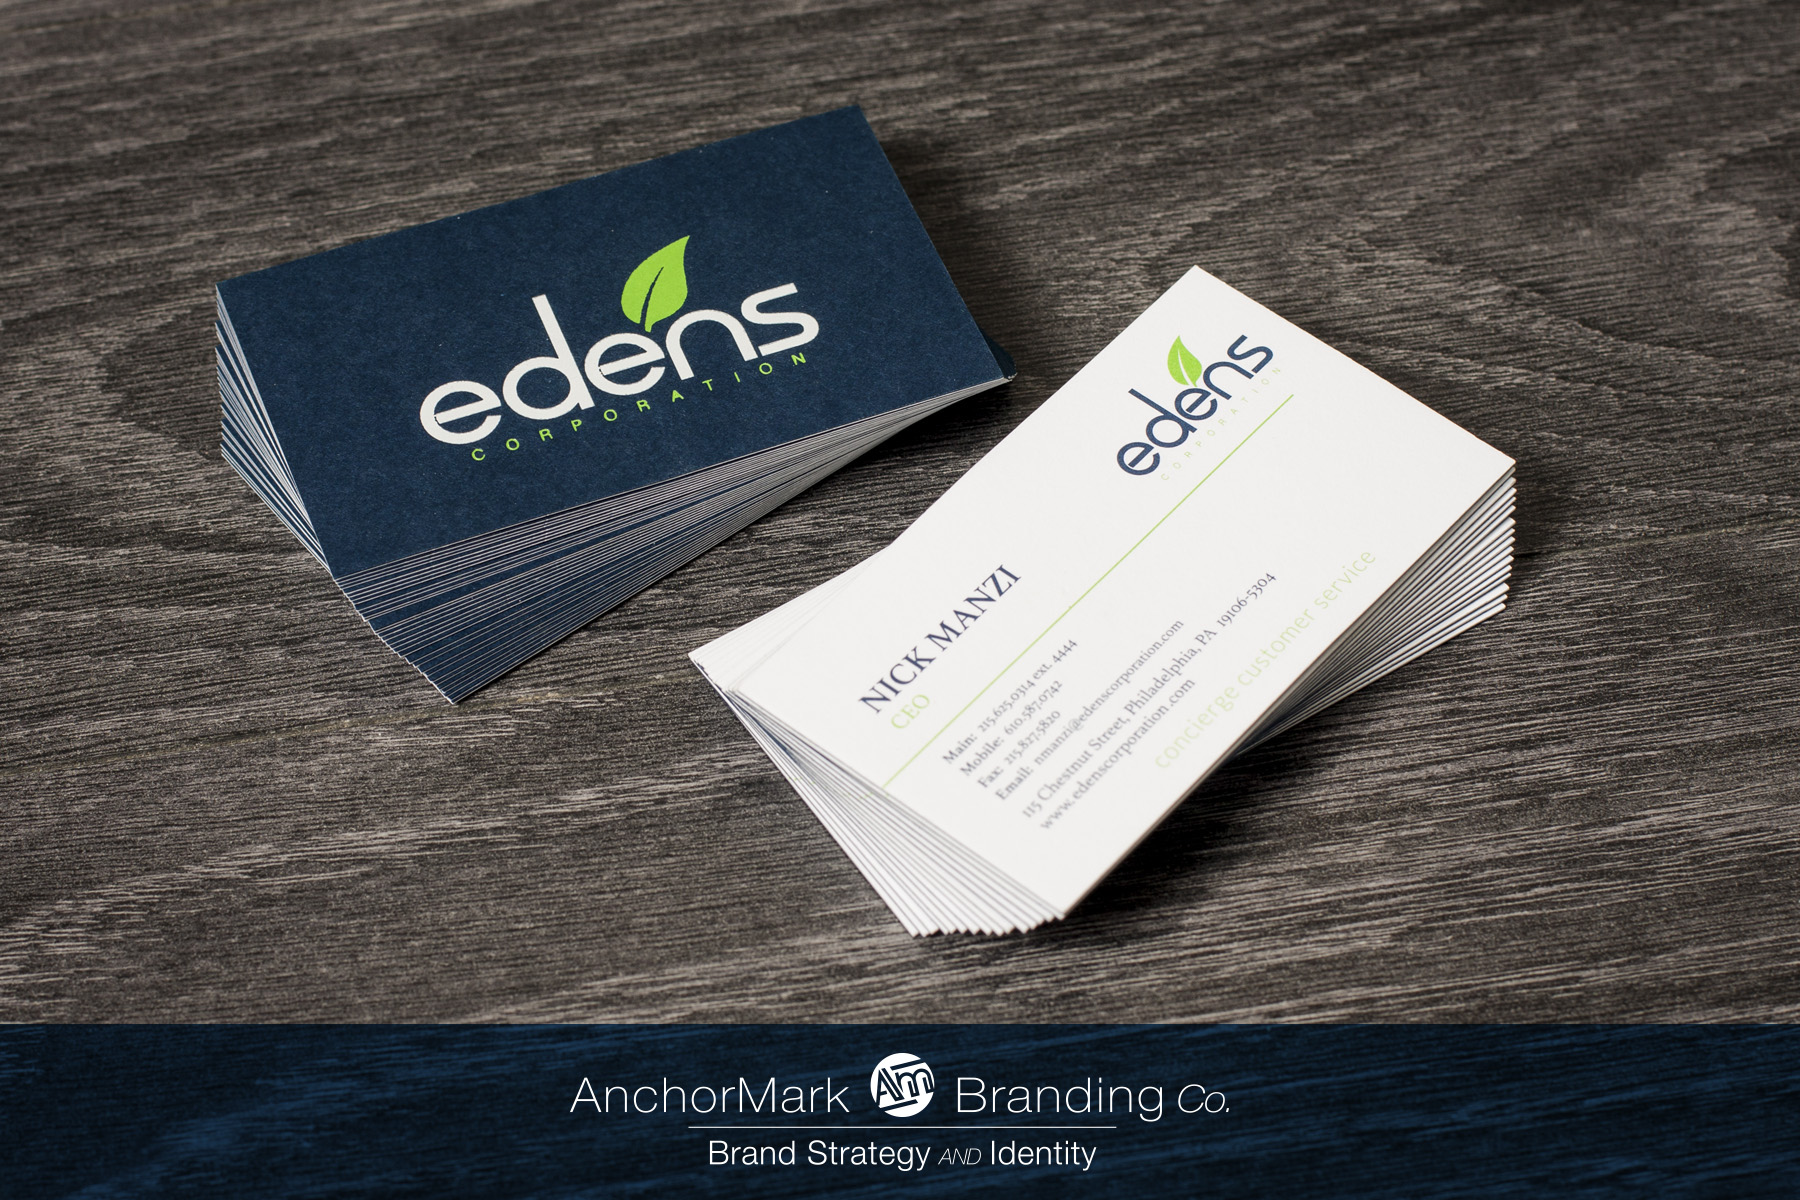 AnchorMark_EdensCorporation_Stationery_20150924_015